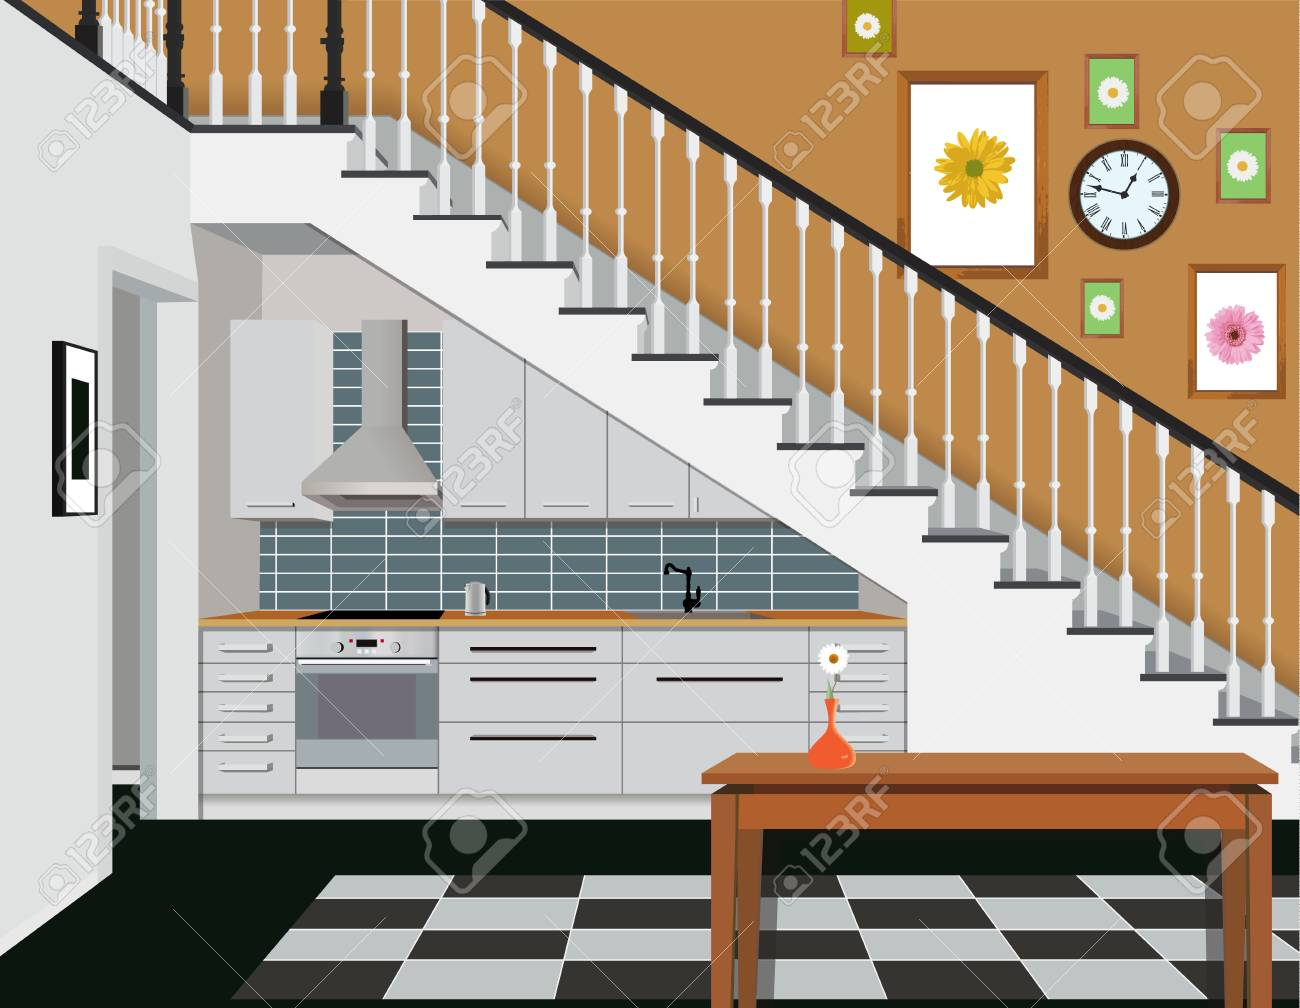 Interior of the kitchen under the stairs with furniture. Design..